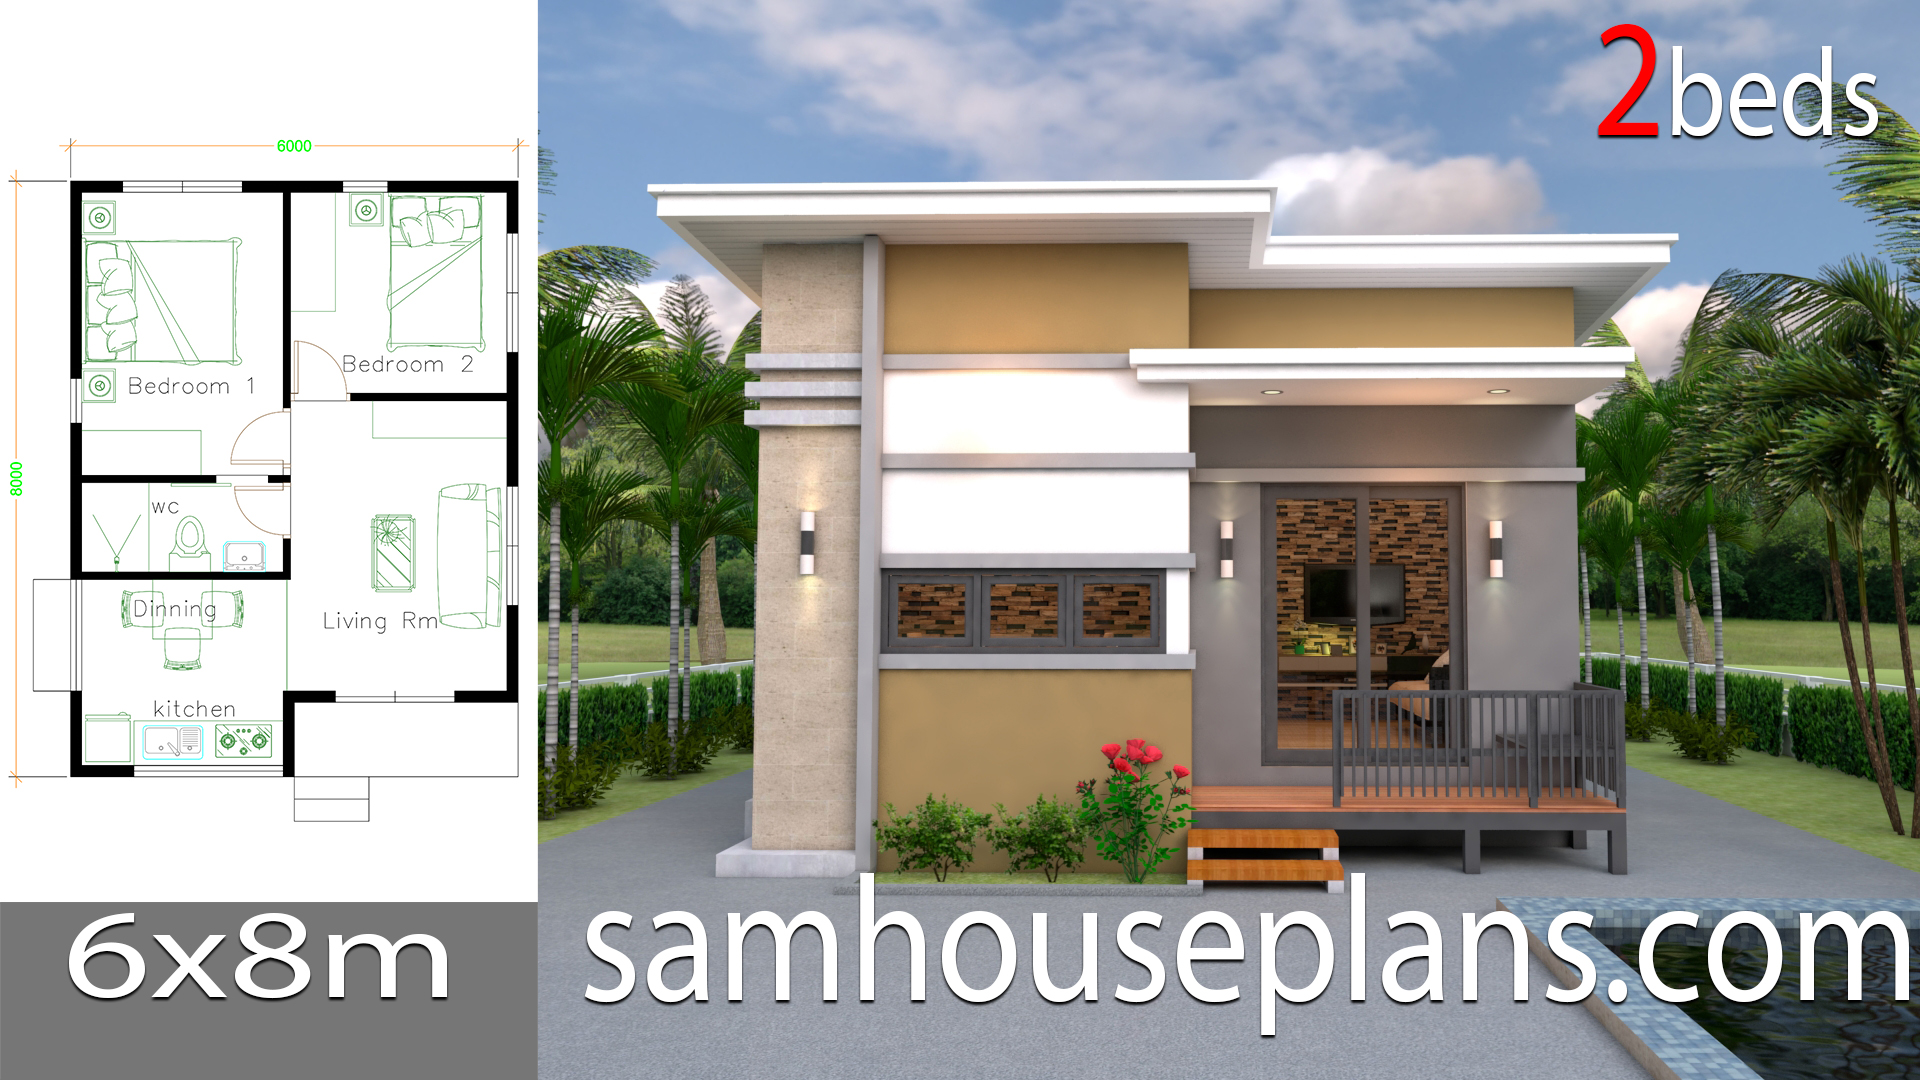 House Design Plans 6x8 with 2 Bedrooms - Sam House Plans on handicapped homes plans, trailer homes plans, wheelchair in your home, wheelchair blueprints,